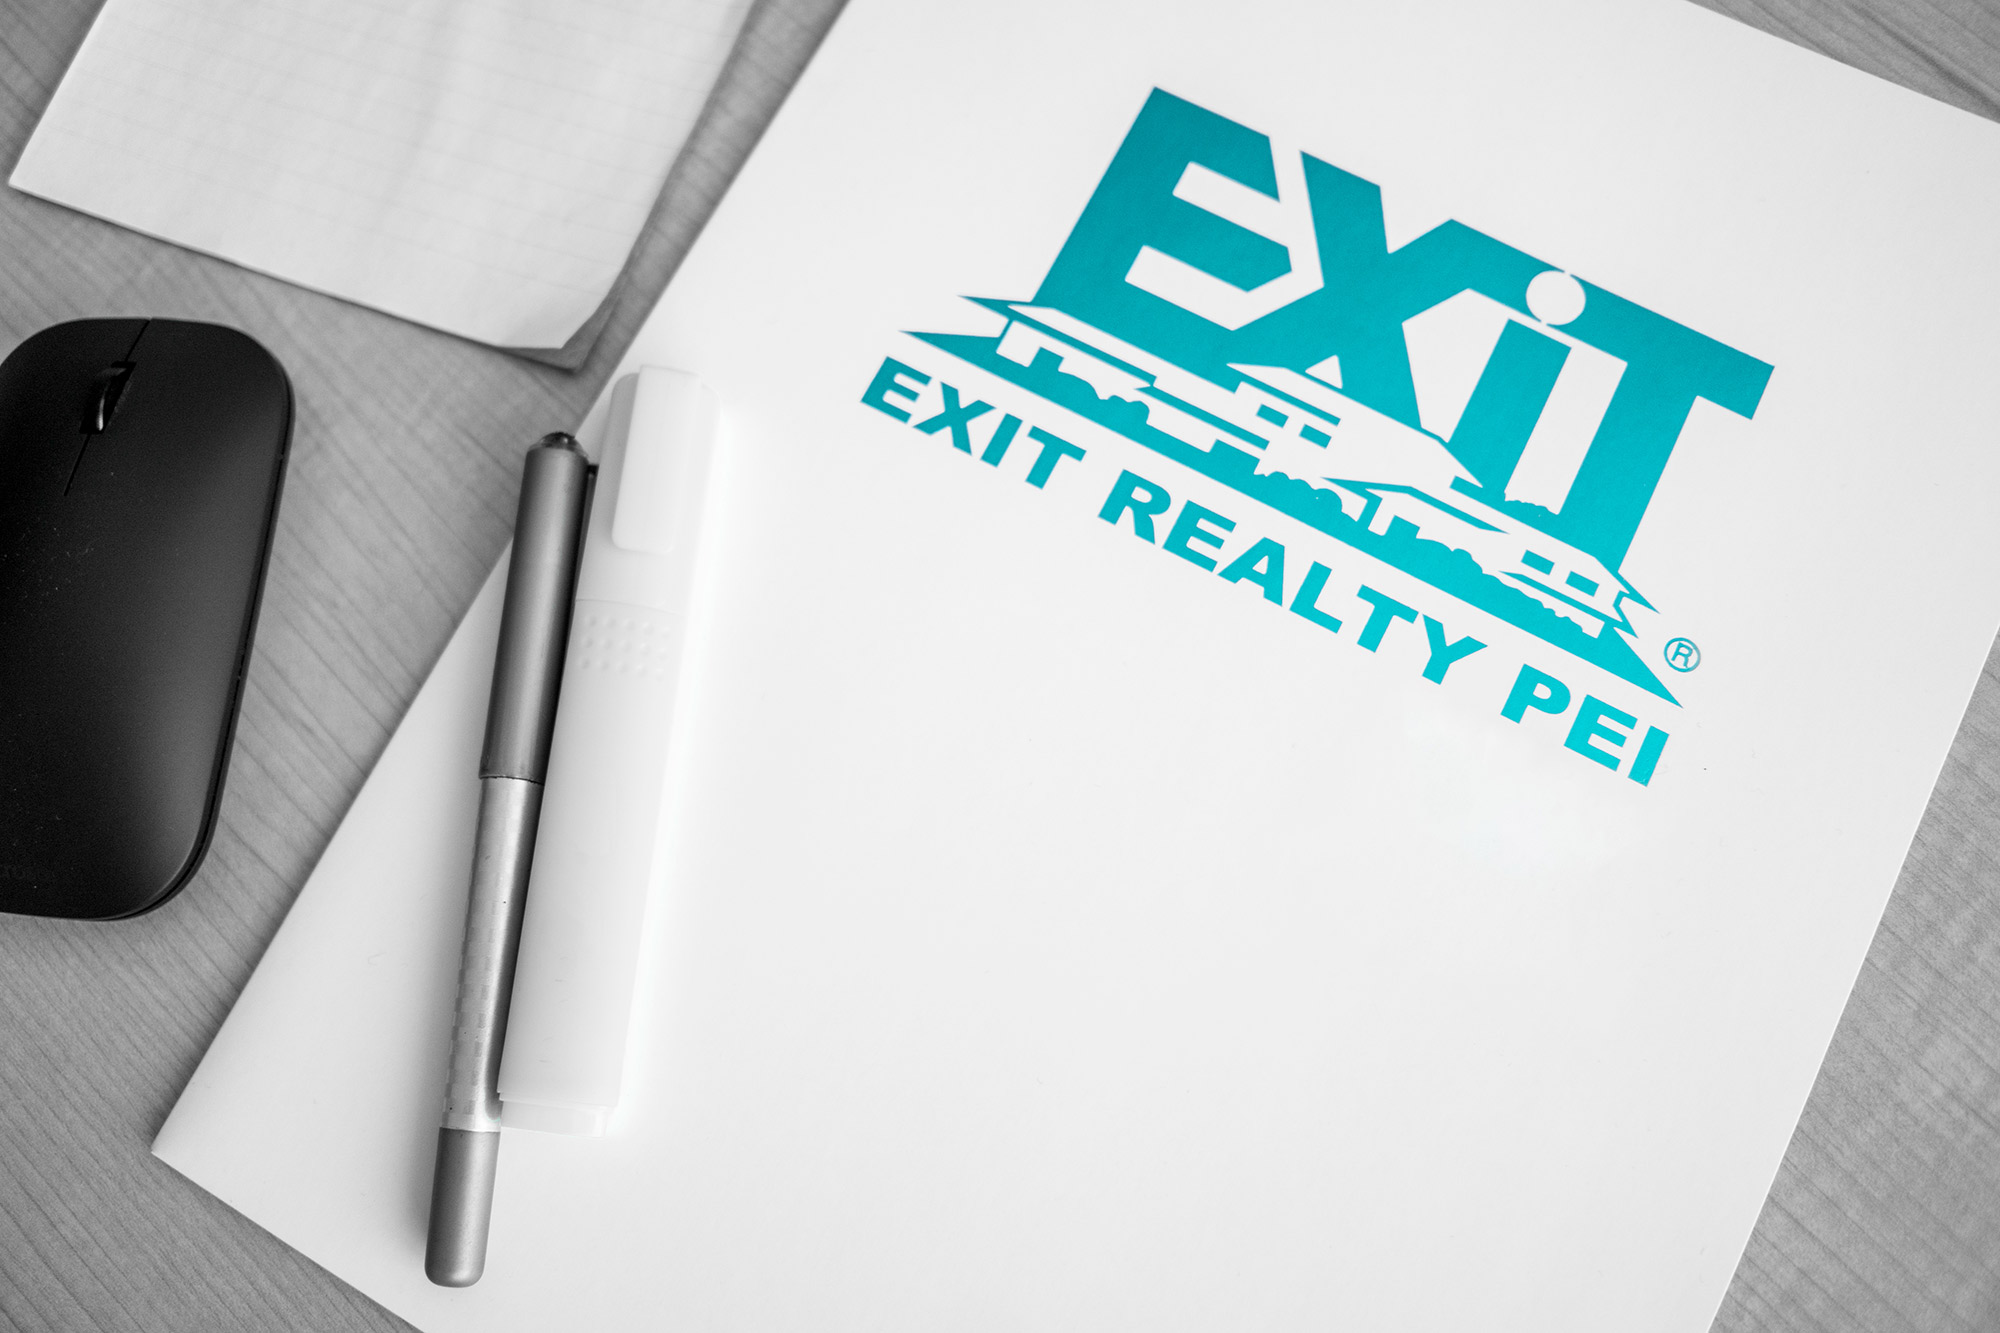 Welcome To The All-New EXITRealtyPEI.com